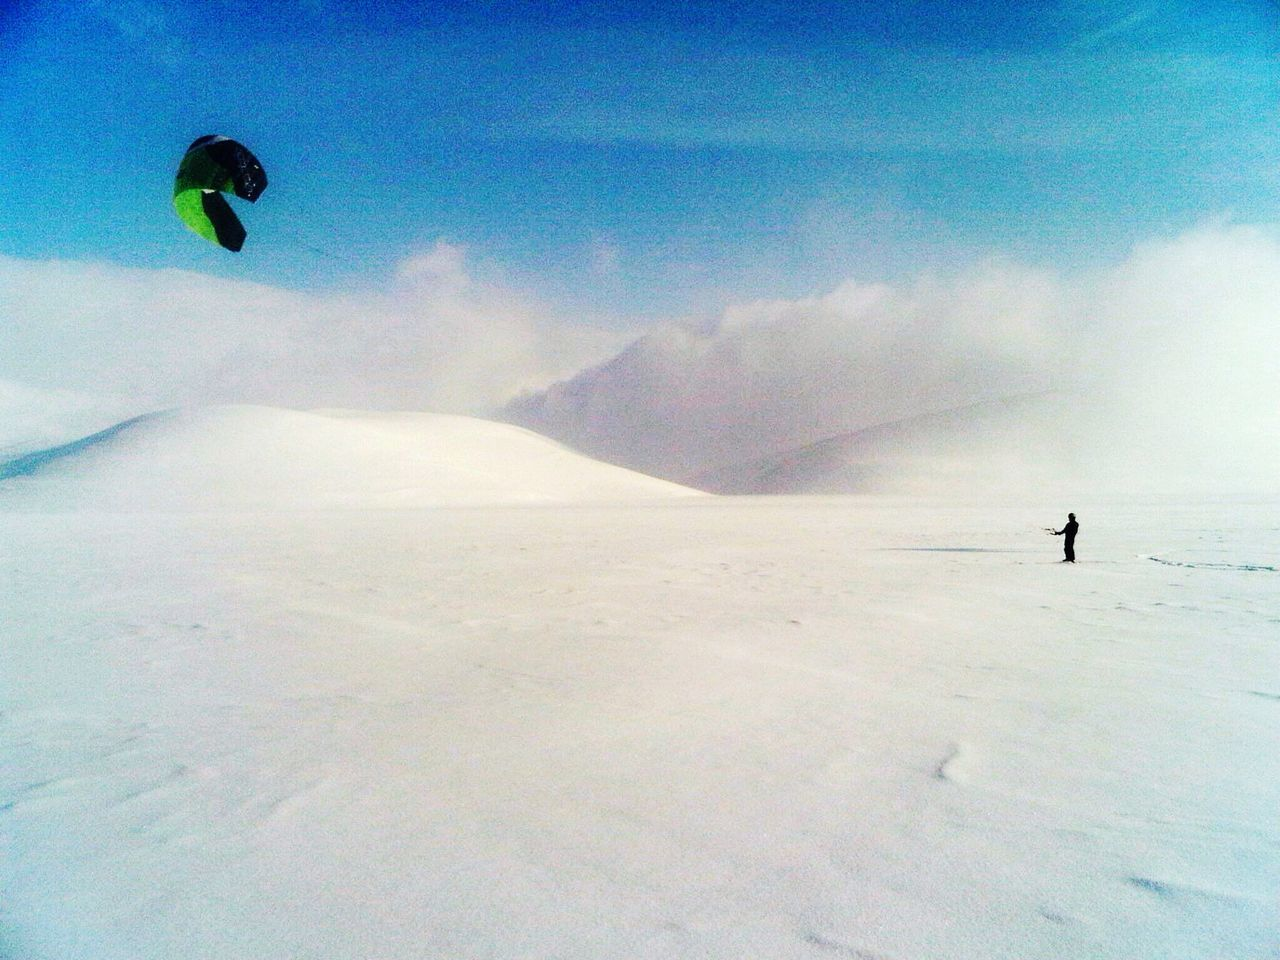 Adventure Snow Winter Cold Temperature Leisure Activity Unrecognizable Person Extreme Sports One Person Nature Day Outdoors Blue Sky Scenic View White Snowcapped Mountain Snowsurf Kitesurfing Winter Landscape Sport Beauty In Nature Winter Sport Wind Surfing Skiing Snow Covered Snowsurfing